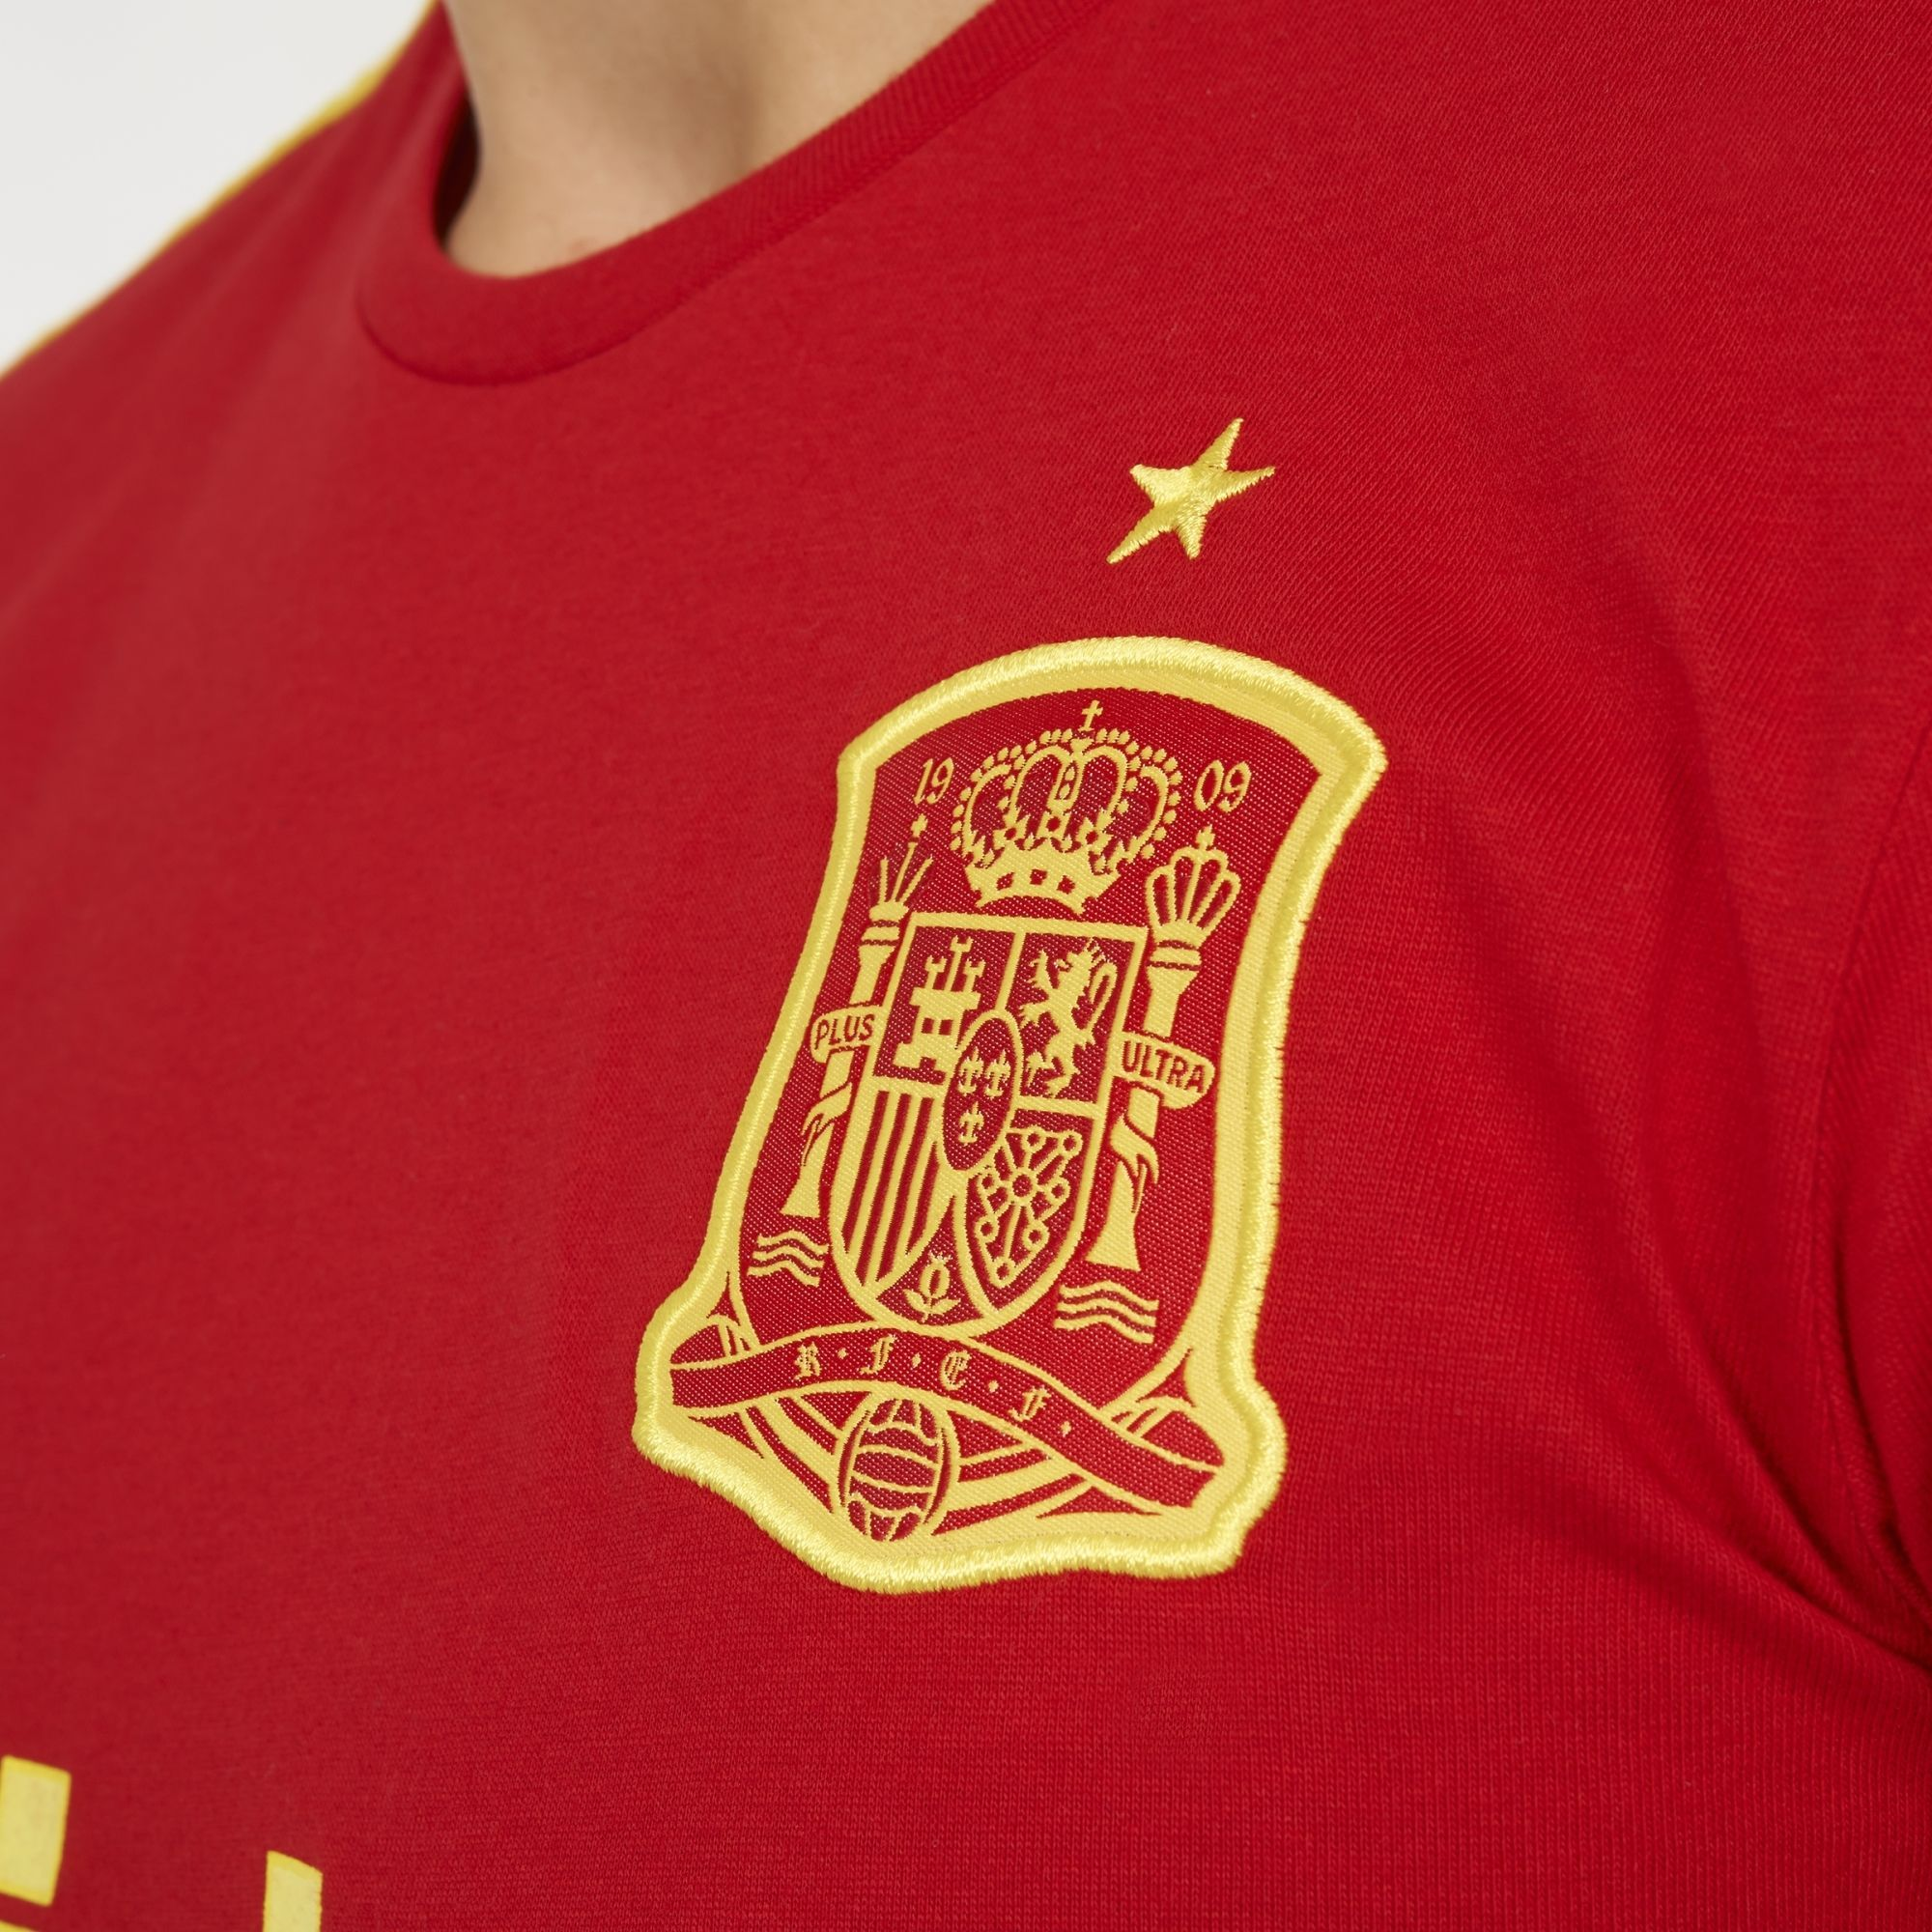 400a238b0 ADIDAS AI4447 Spain GRAPHIC TEE Football Soccer Home Shirt 2016-17 - Size  Large NEW